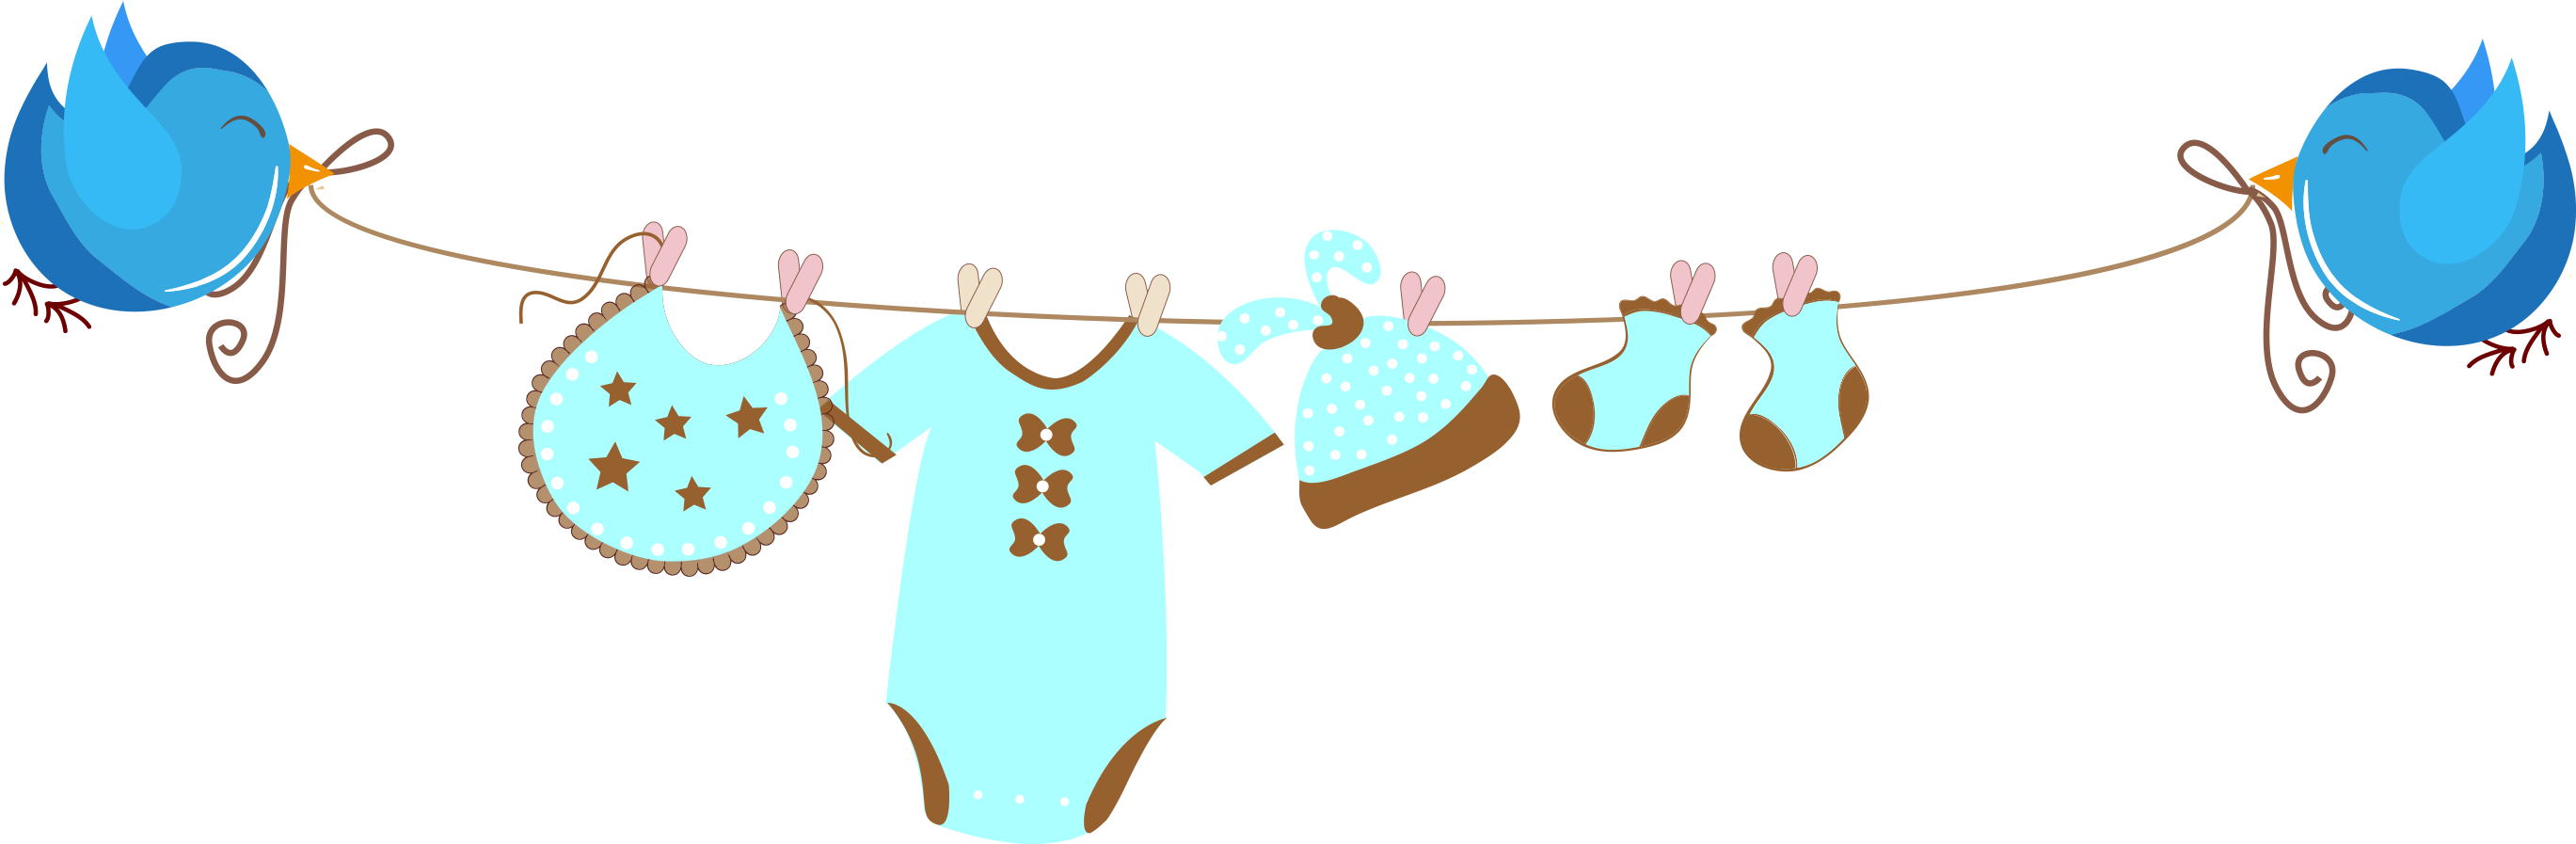 Isaac Transparent Background Baby Banner Png Clipart Large Size Png Image Pikpng